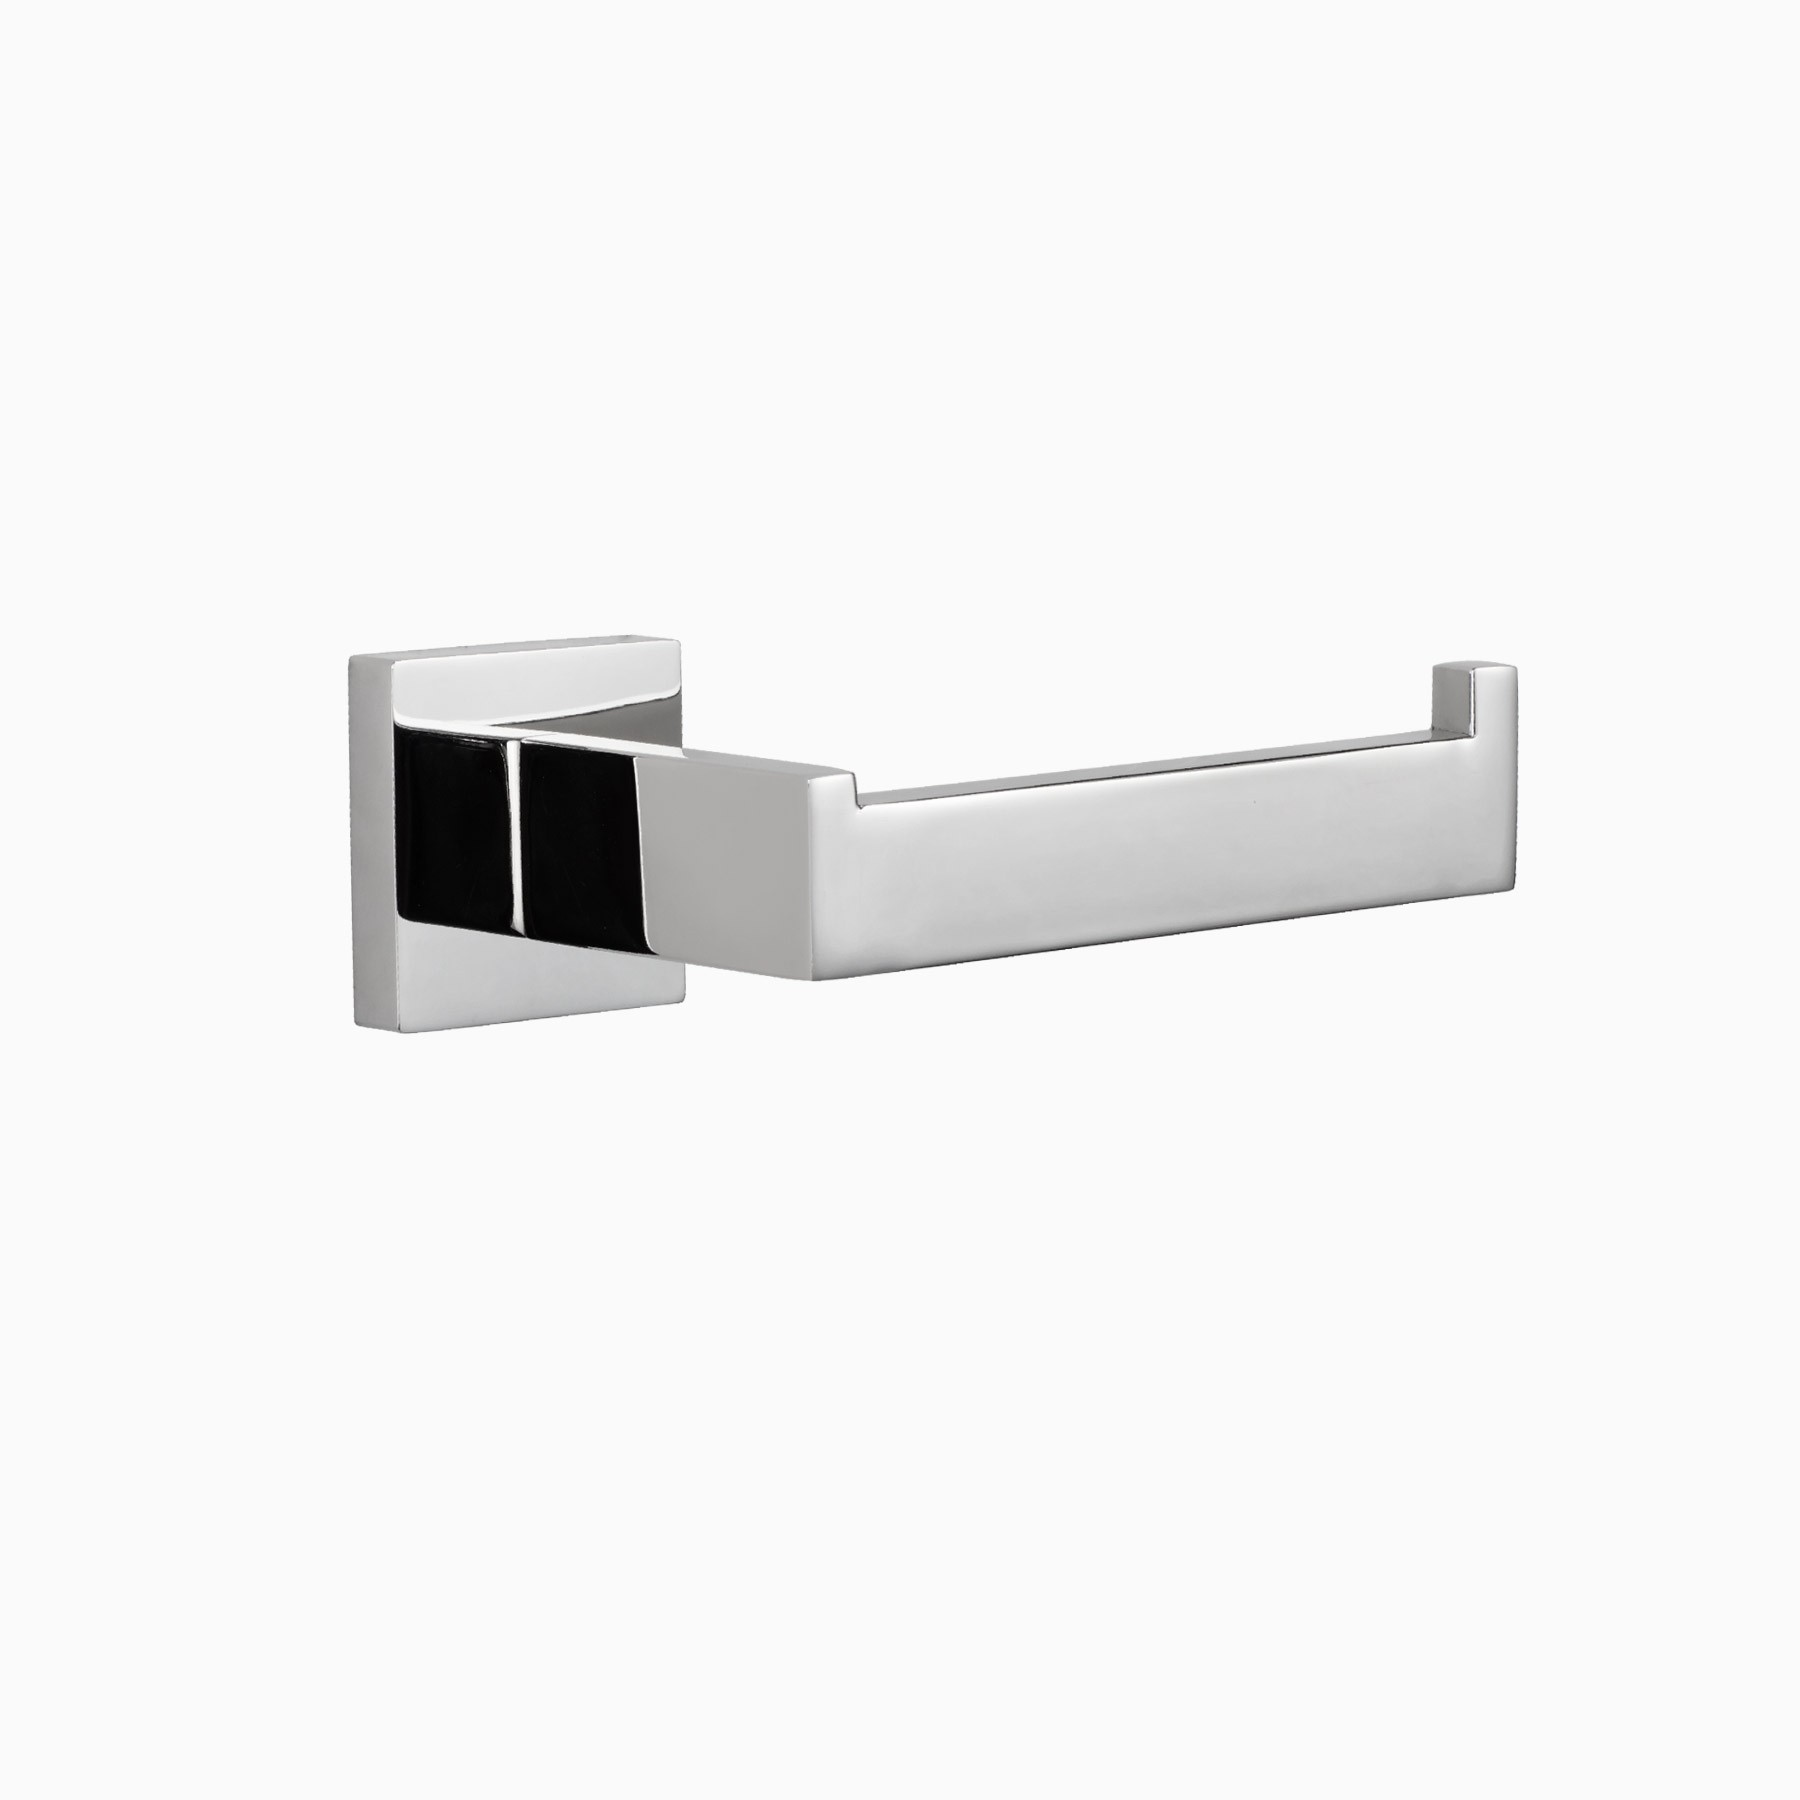 wall mounted toilet paper holder. TriBeCa Toilet Paper Holder - Modern Stainless Steel Wall Mount Roll Mounted